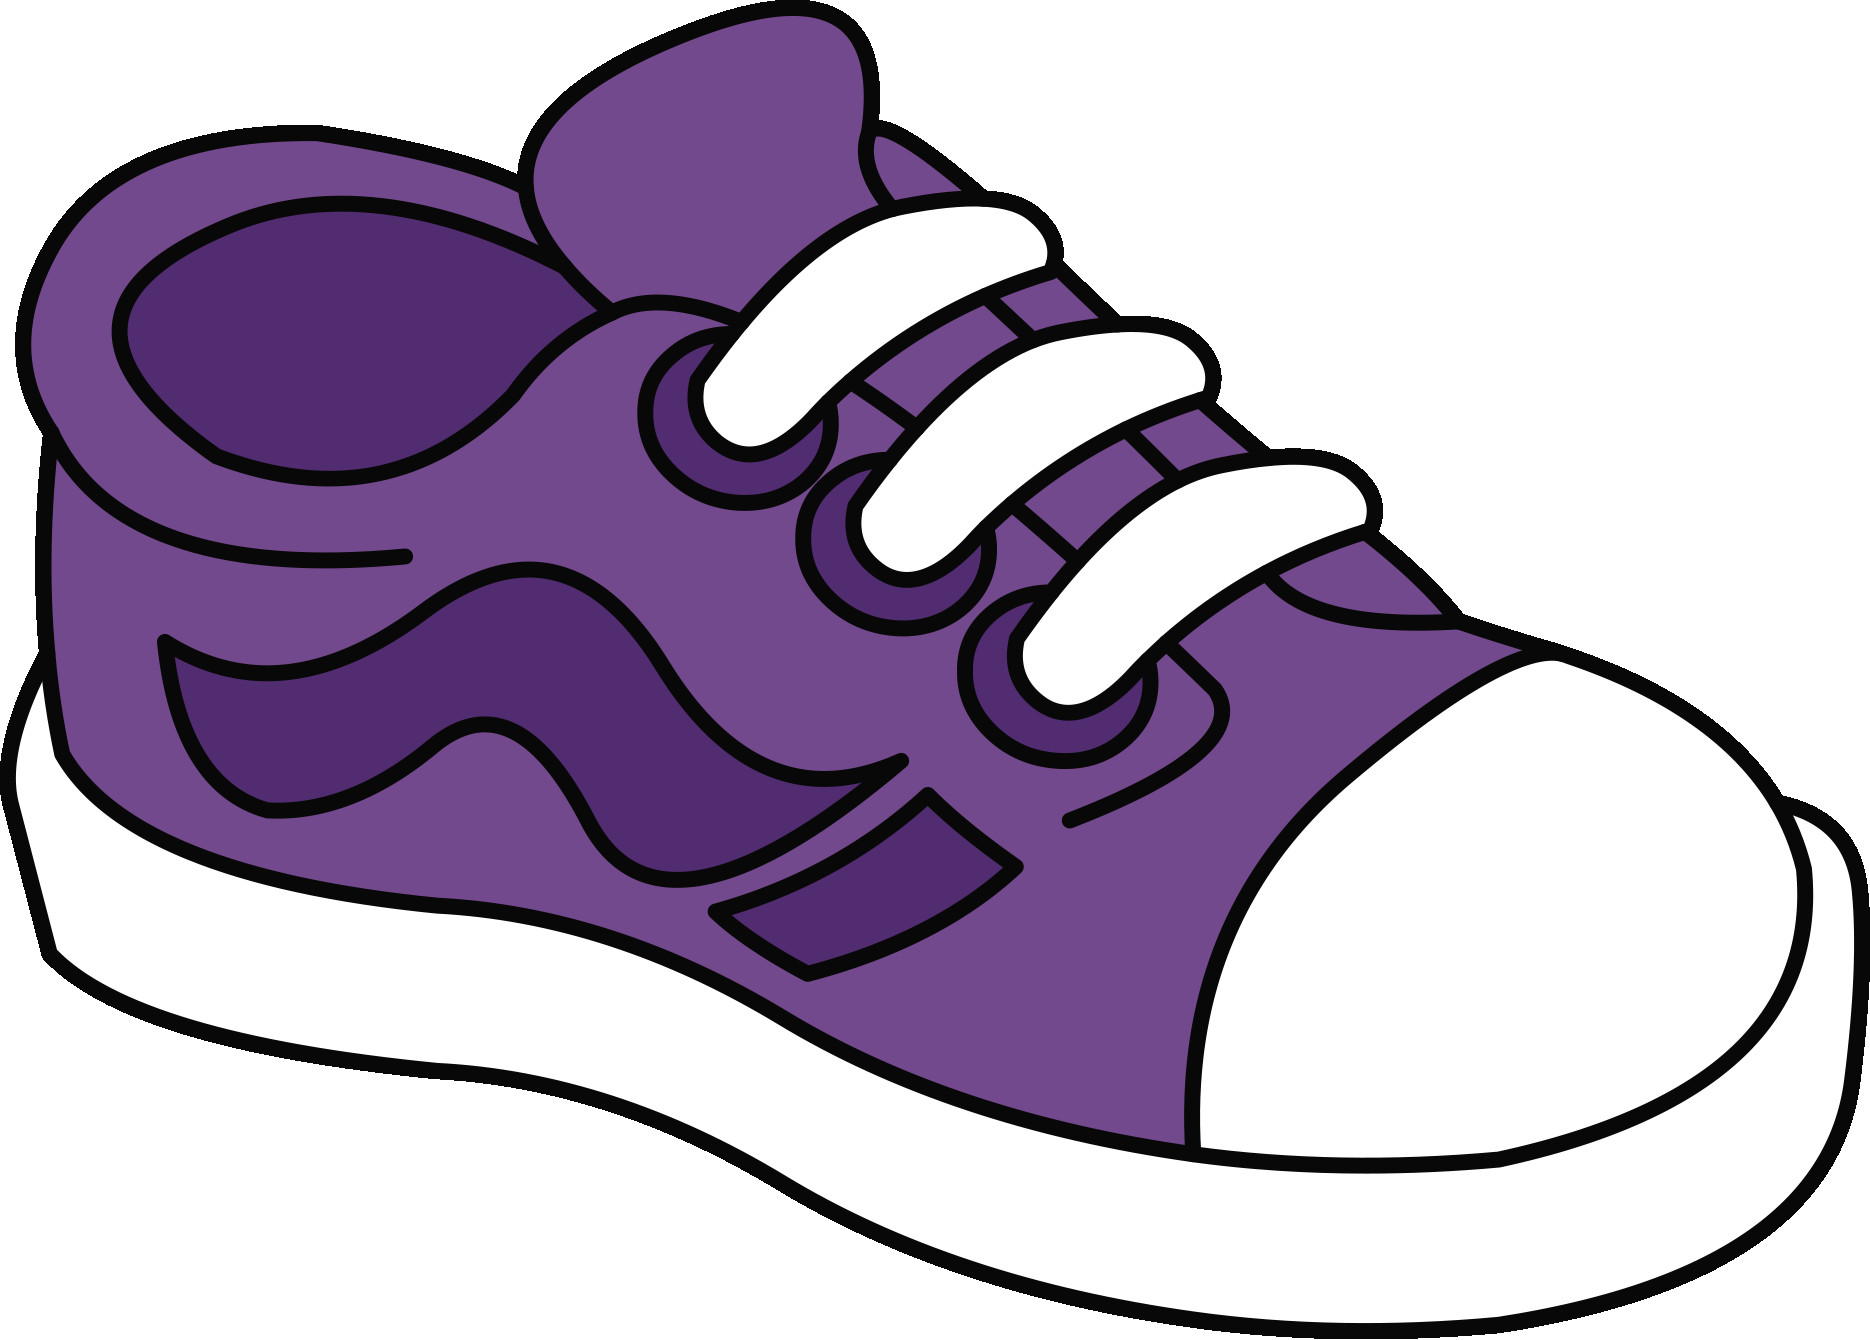 baby booties clipart at getdrawings com free for personal use baby rh getdrawings com shoe clip art free shoe clipart